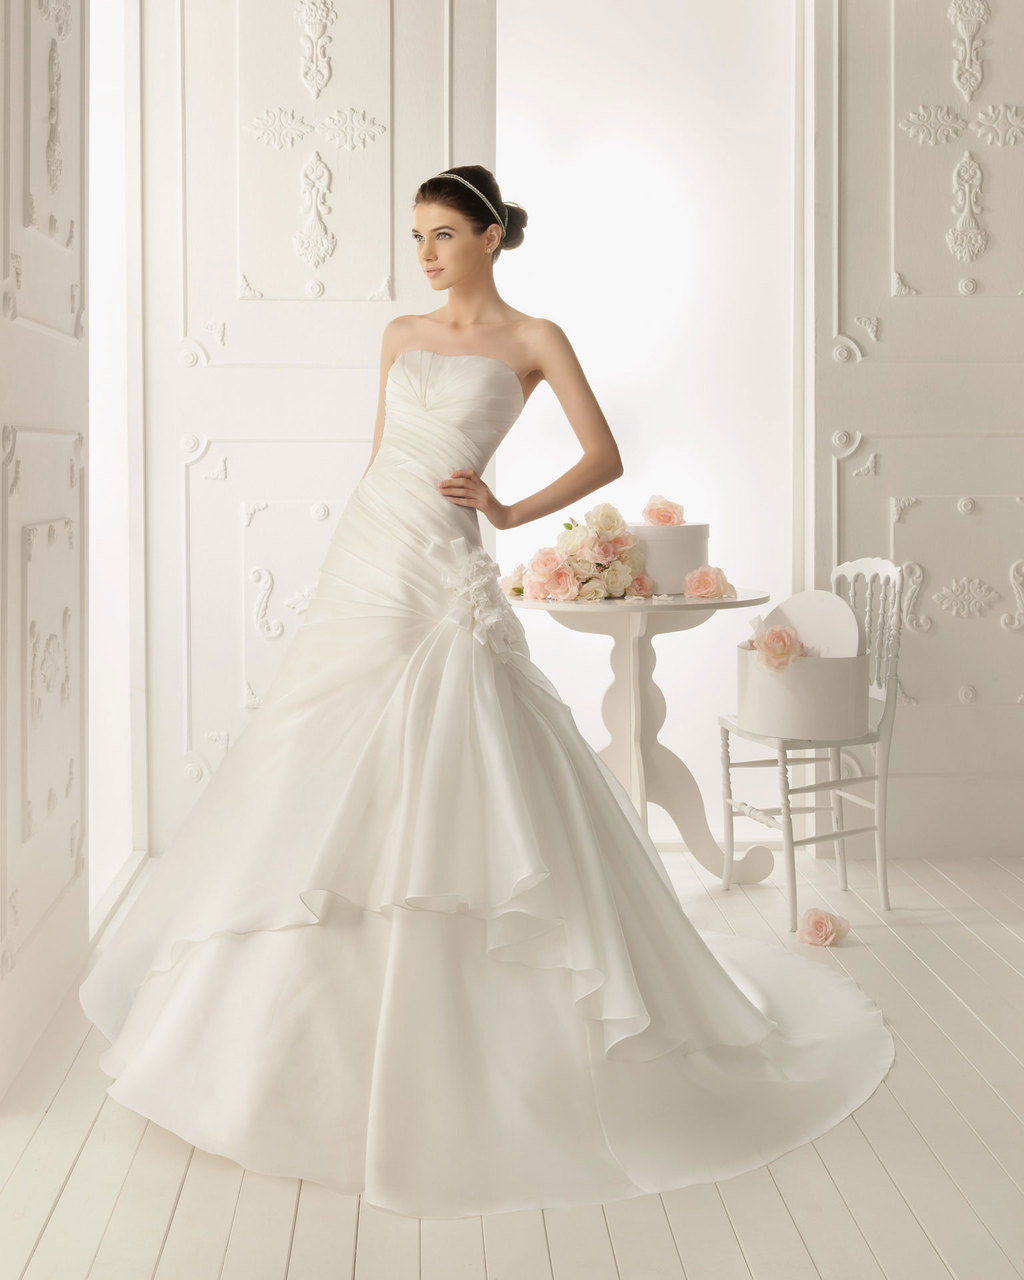 2013-wedding-dress-aire-barcelona-bridal-gowns-roble.full